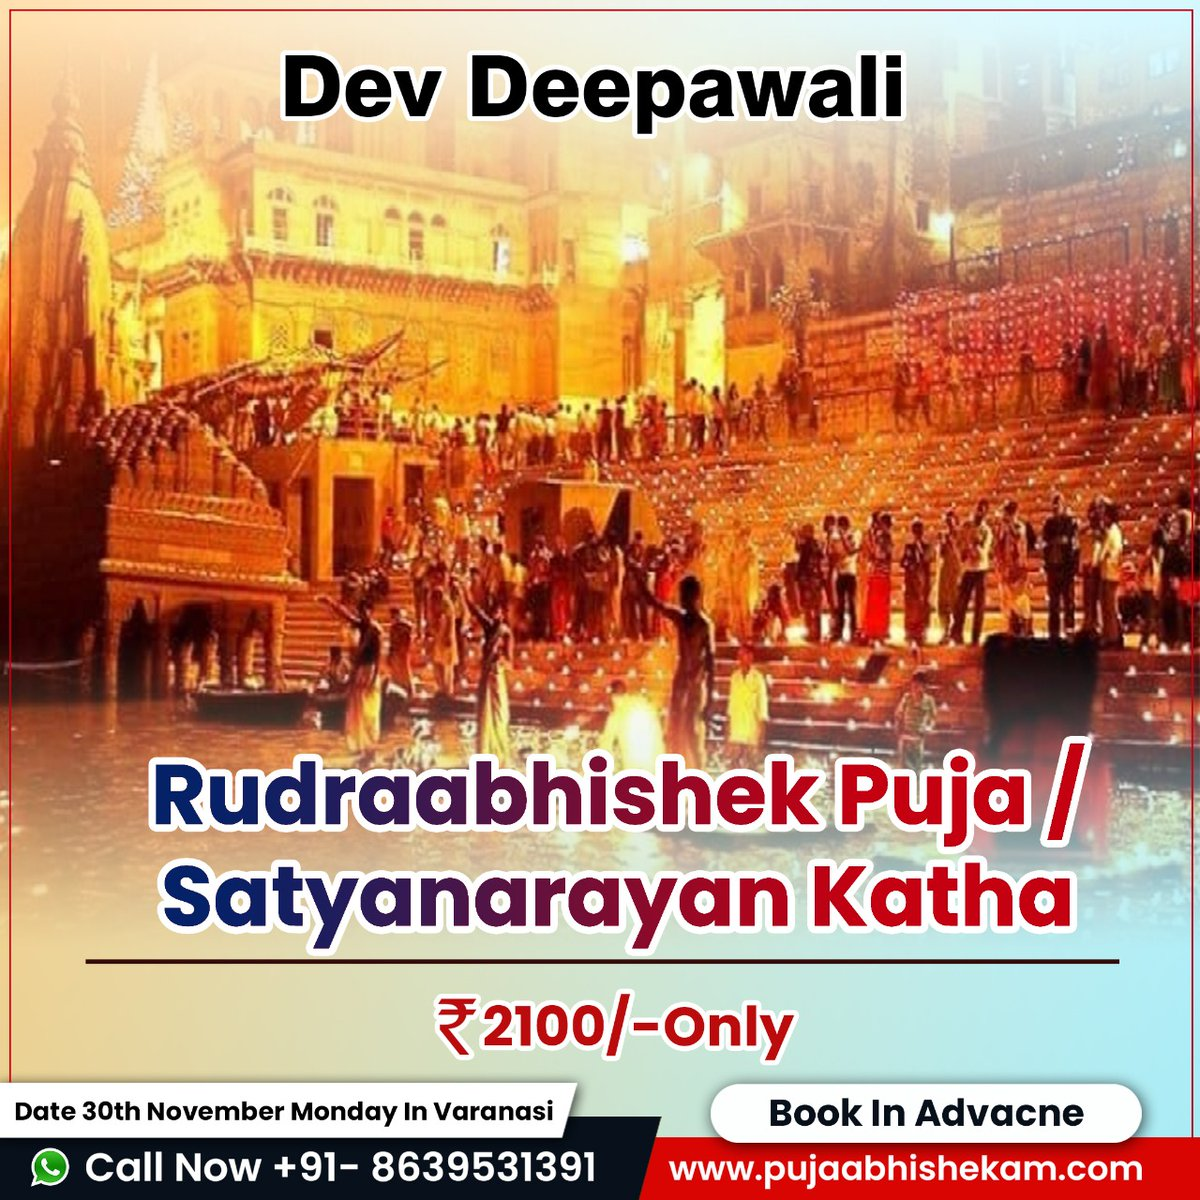 The Dev Deepawali is the festival of #KartikPoornima celebrated in Varanasi, India. It falls on the full moon of the Hindu month of #Kartika and takes place fifteen days after #Diwali. So worshipping god on this day is very important and we will help you with the puja.